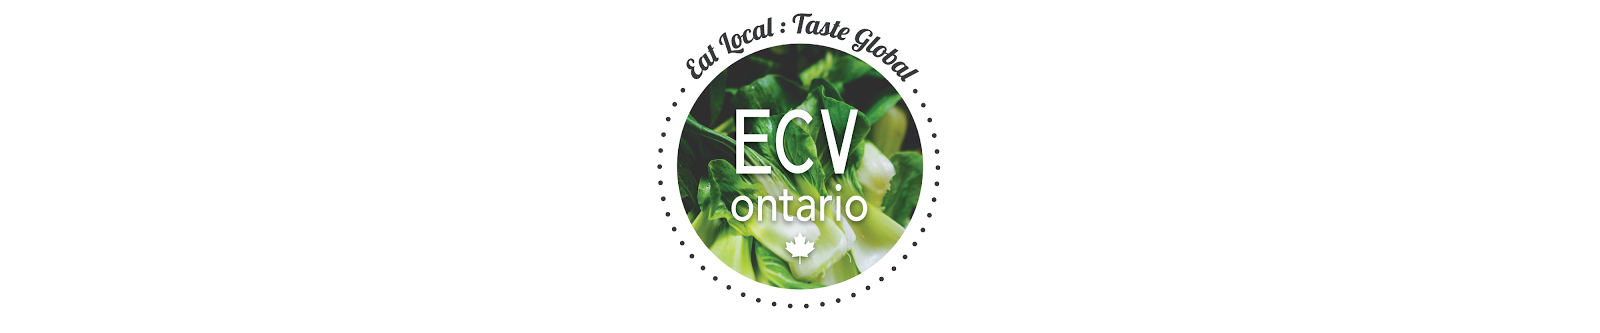 ECV Ontario: Little Mogadishu in the Greater Toronto Area (GTA)